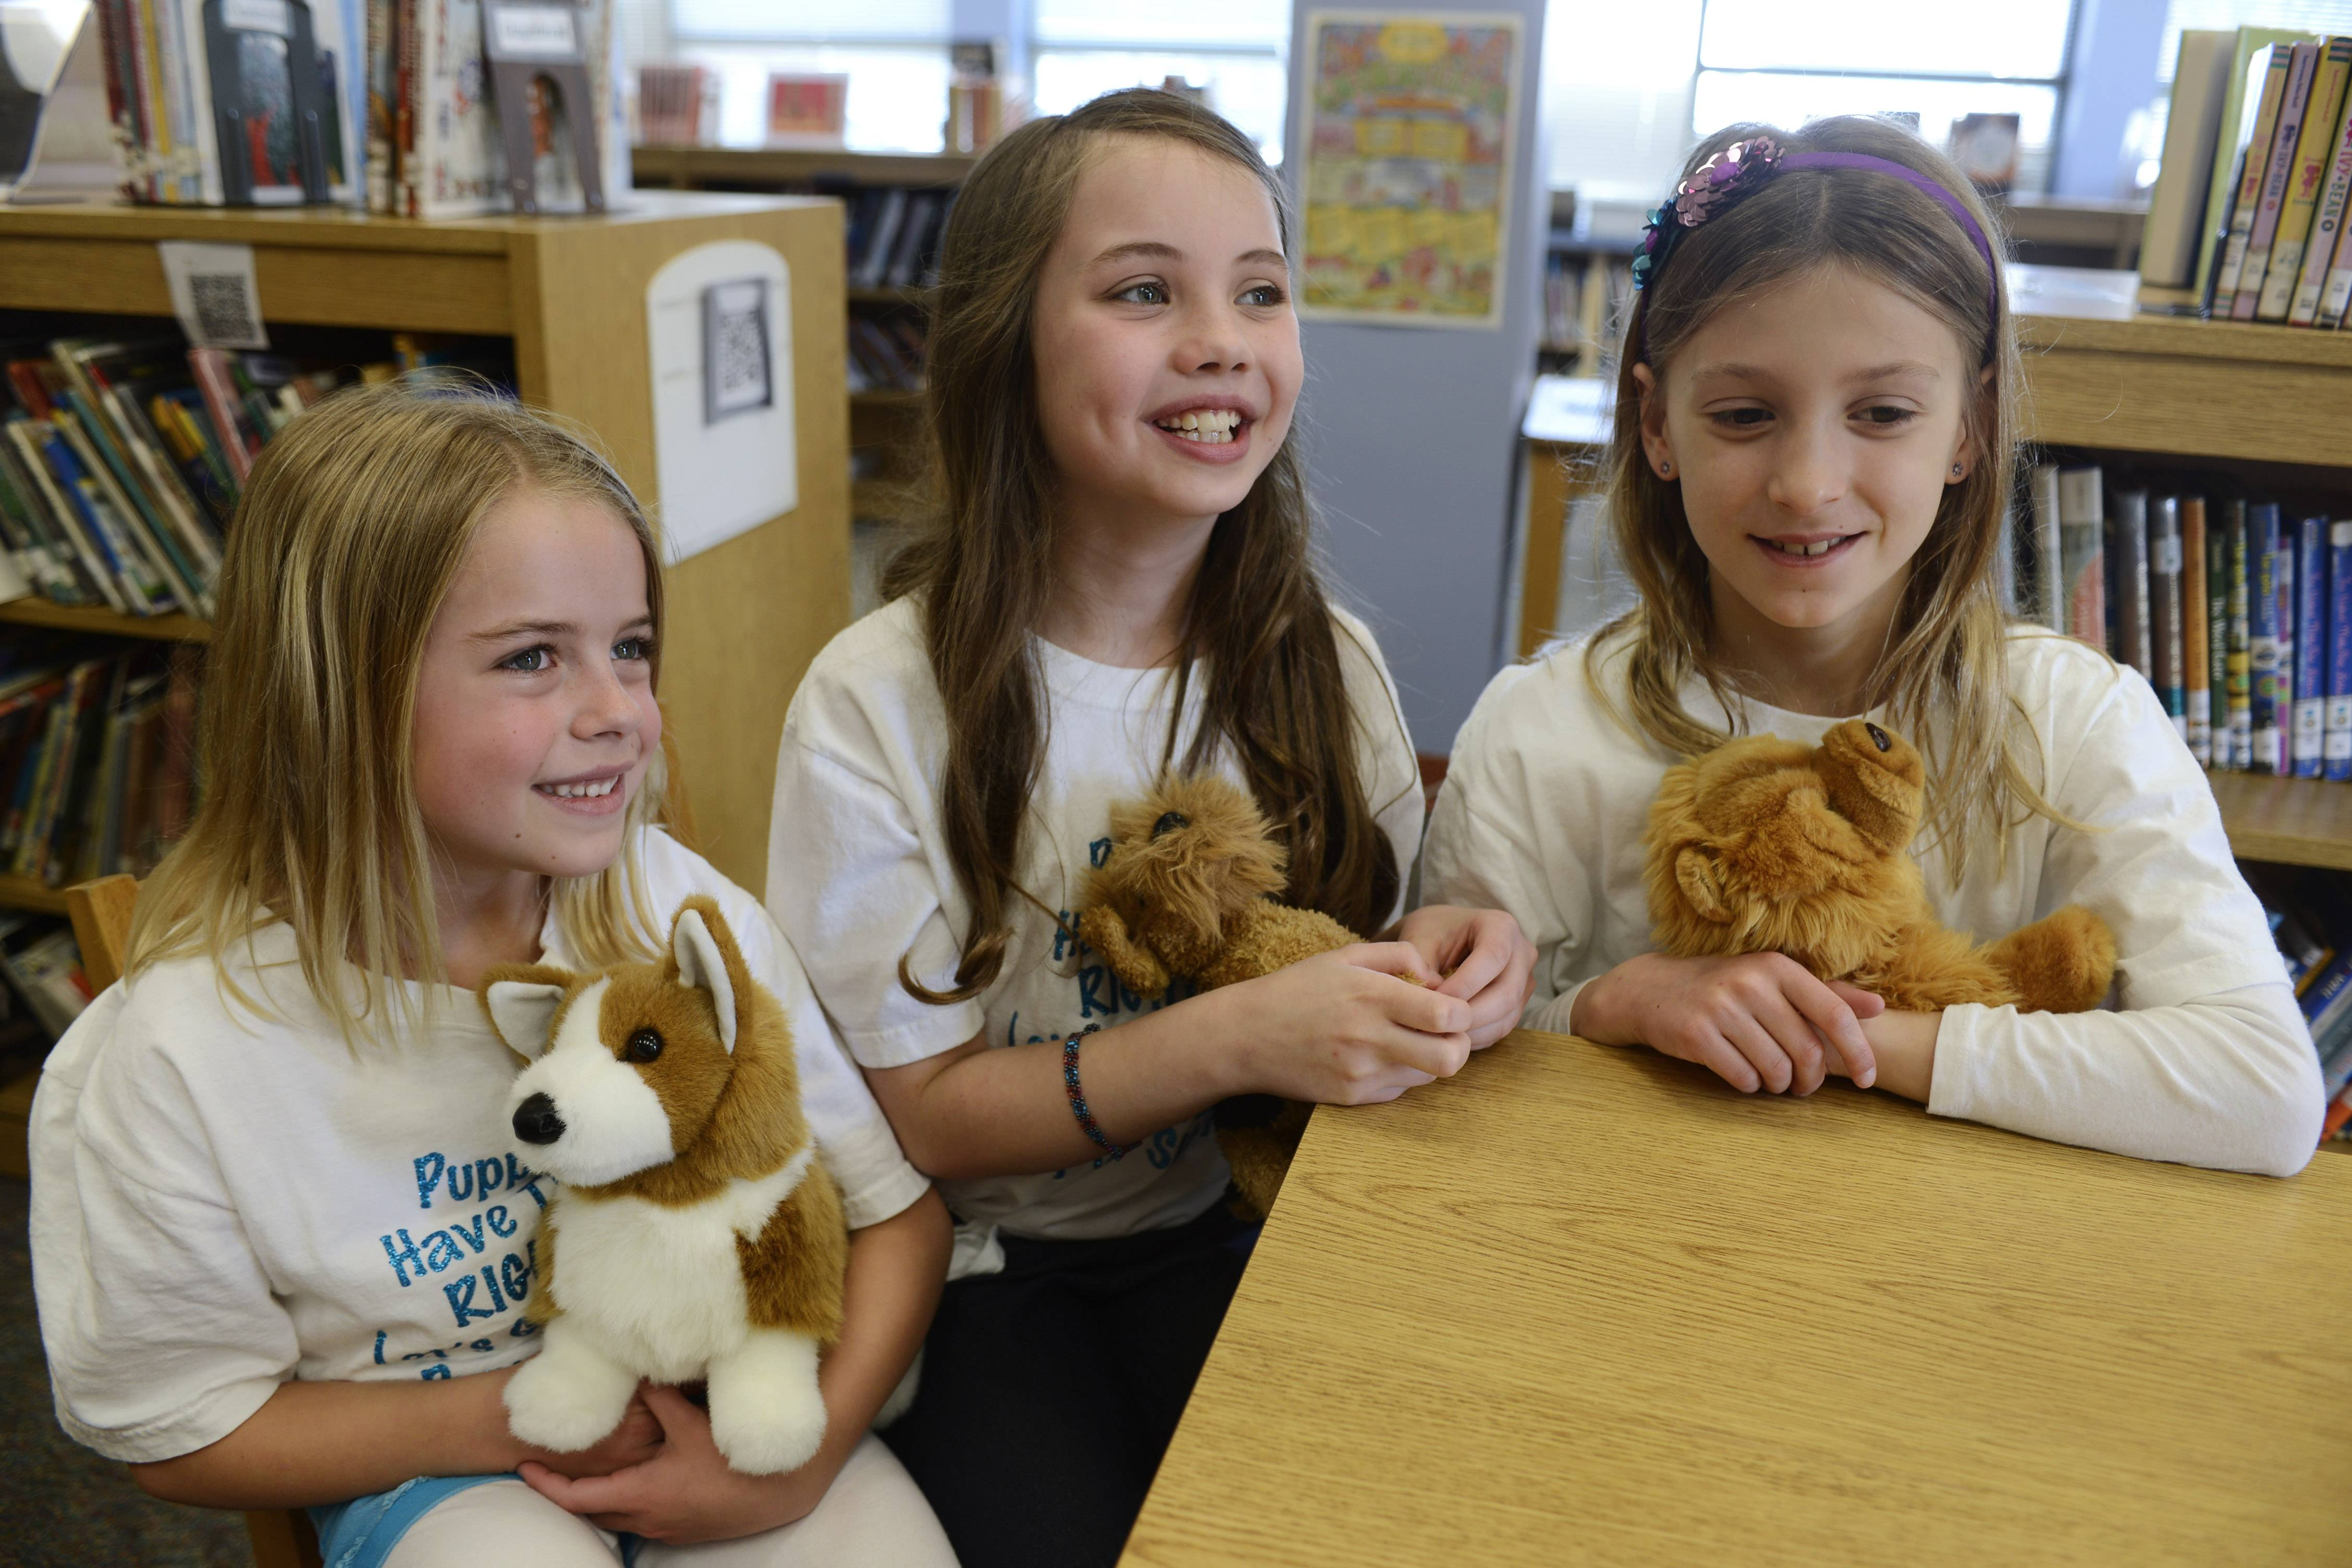 Left to right, Patton School third graders Claire Hackmann, 8, Maddie O'Dell, 9, and Brooke Martin, 8, talk about their recent presentation before the Illinois State Legislature urging members to pass a bill outlawing puppy mills in Illinois.